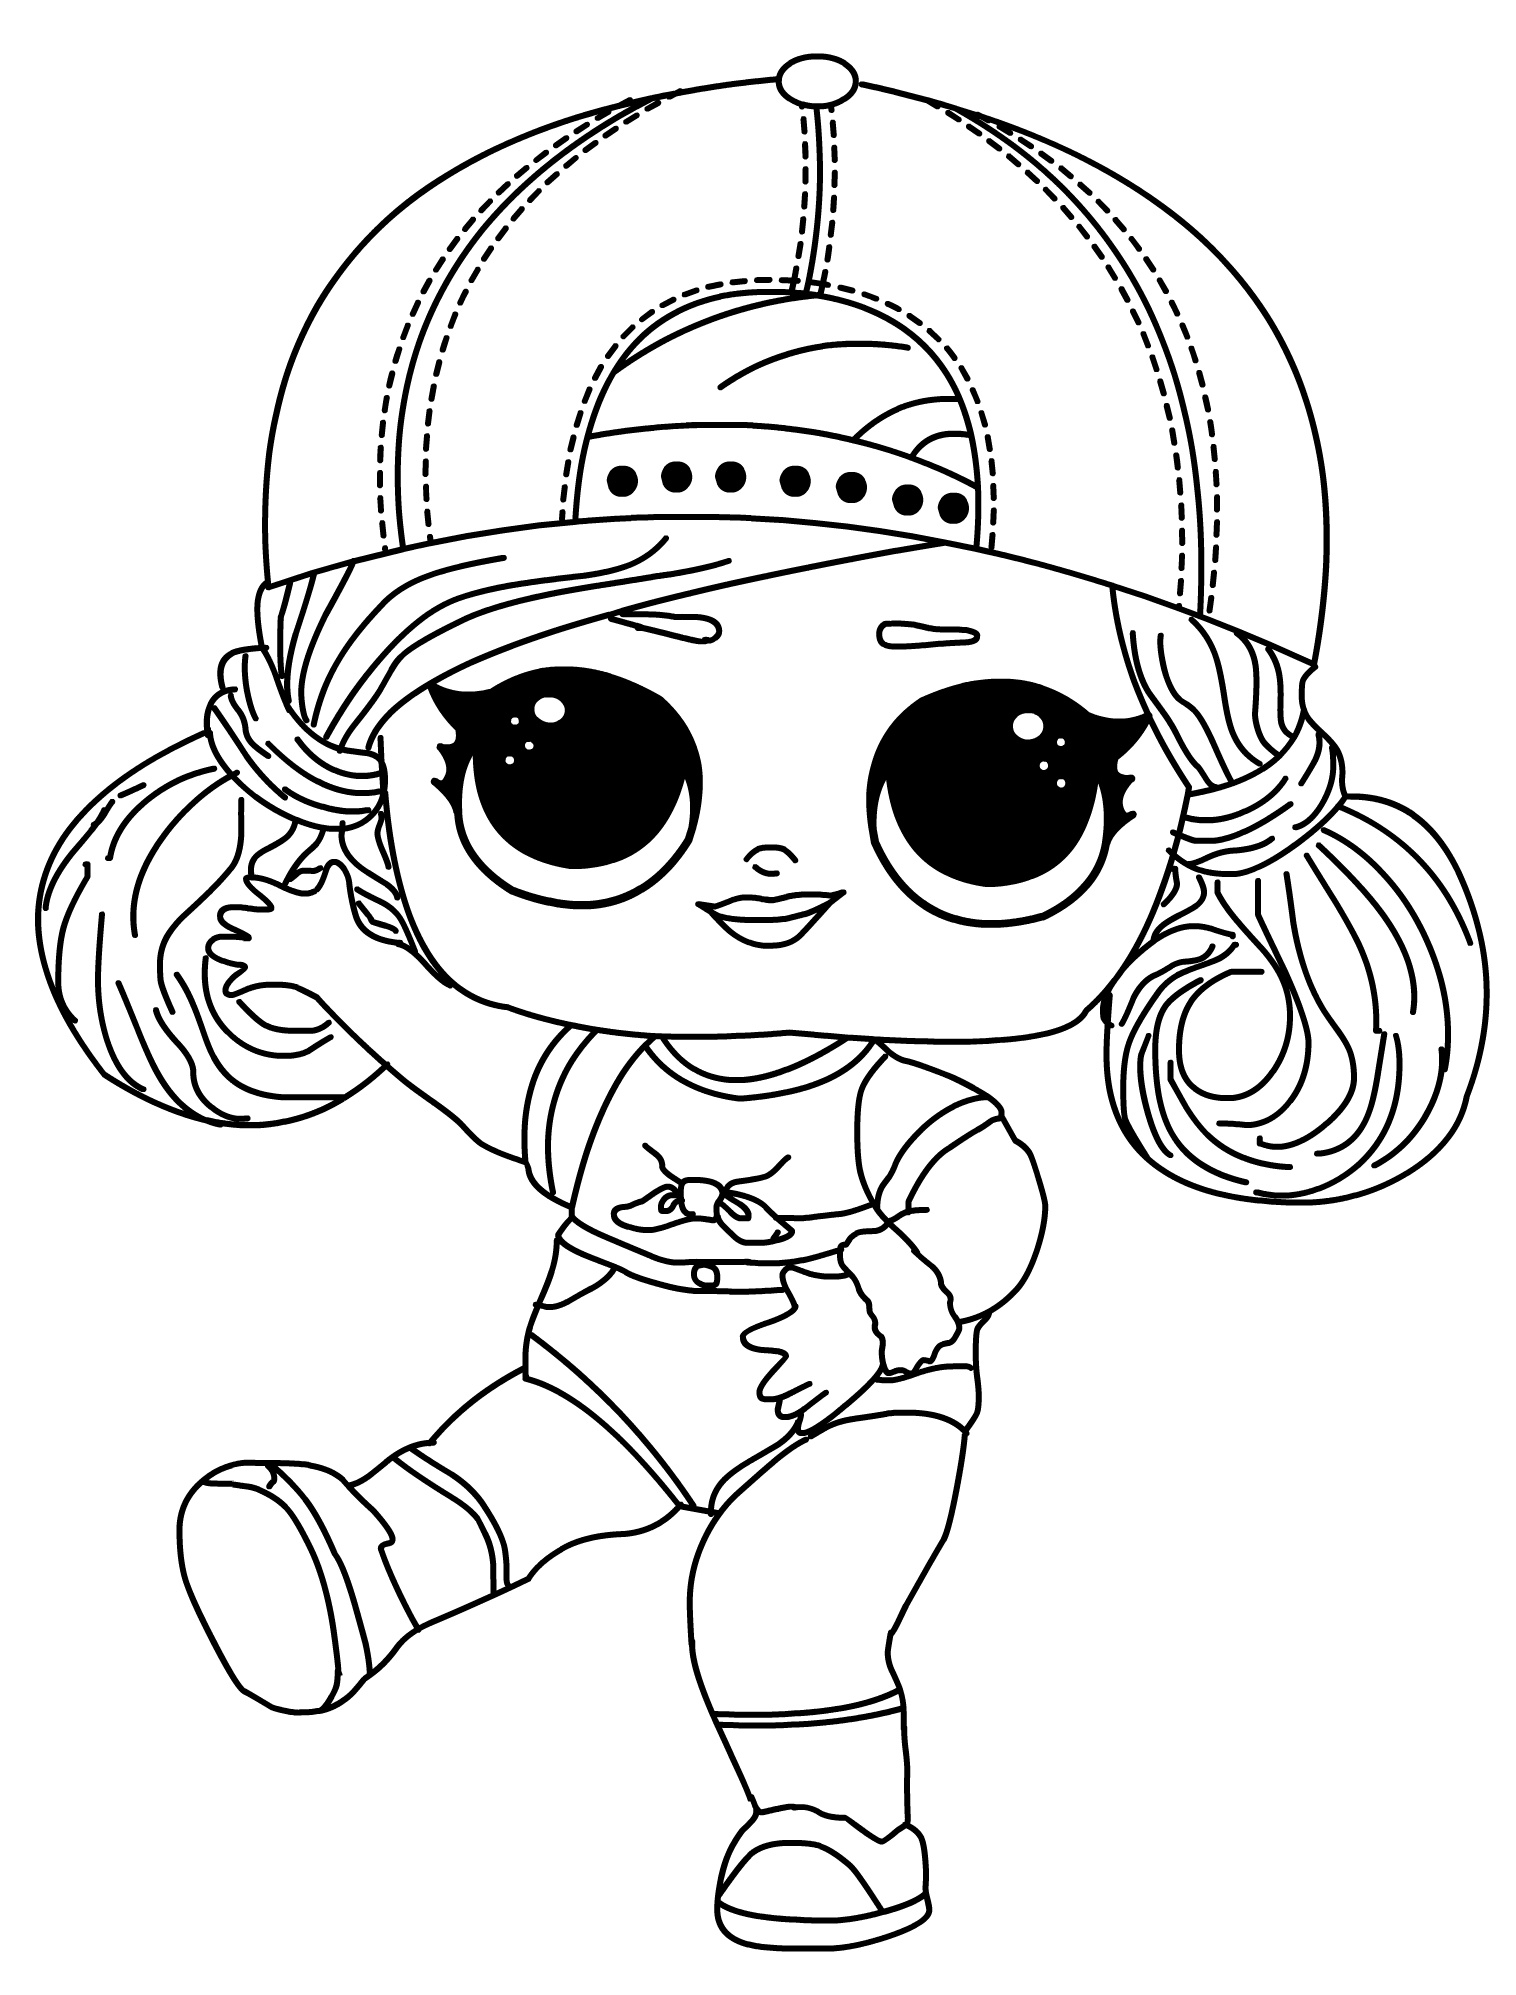 Cute Surprise LOL Doll Printable Coloring Pages